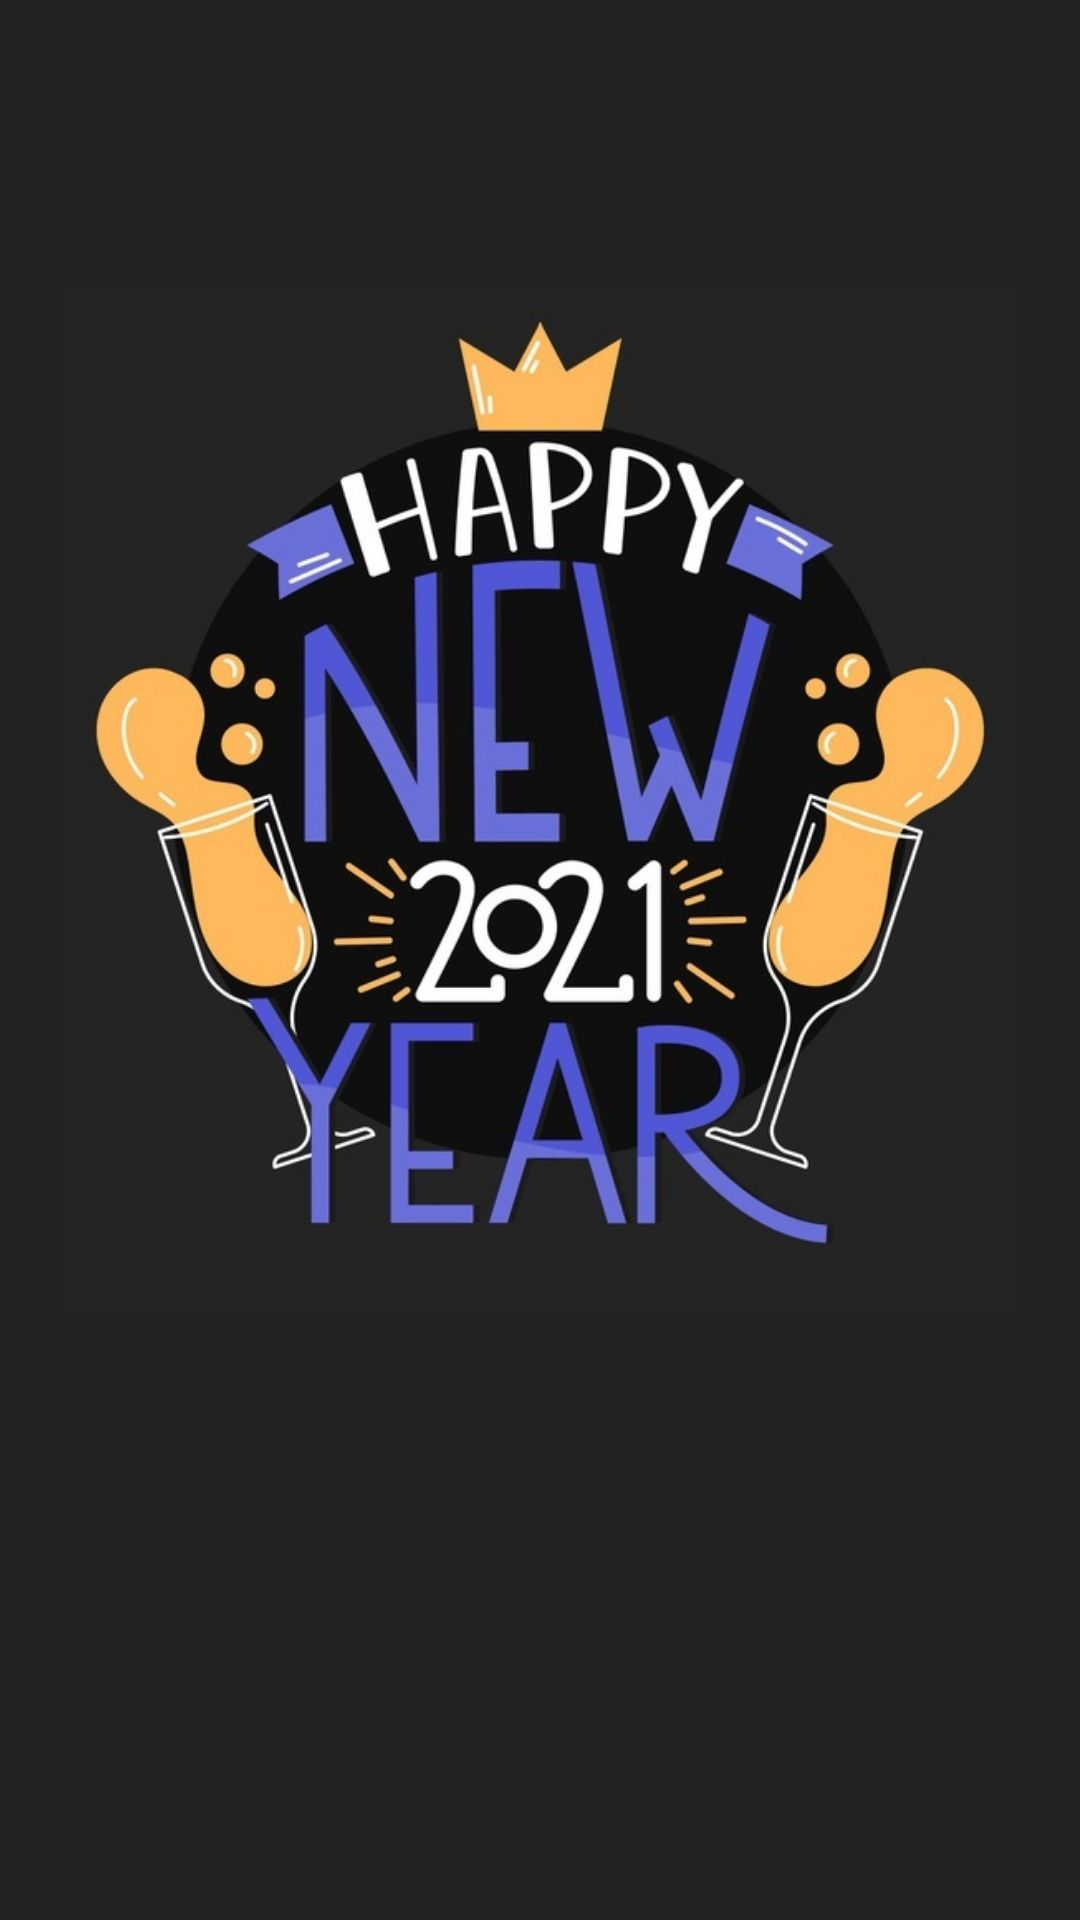 New Year Cute Wallpapers 2021 For Android And Iphone Backgrounds Happy New Year Images Happy New Year Wallpaper Cute Wallpapers